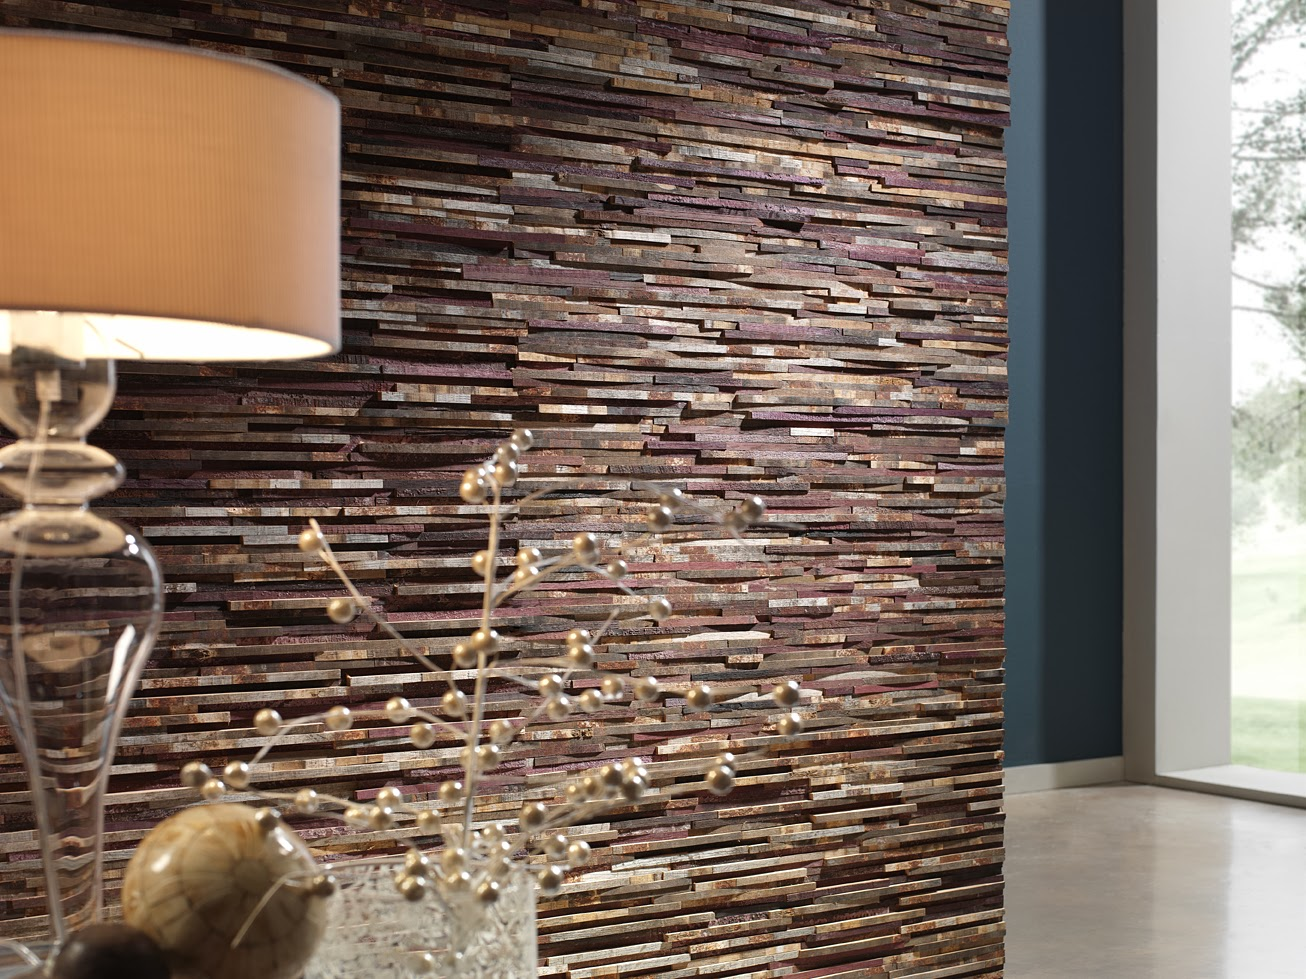 Covering Interior Brick Walls Fabulous Faux Contemporary Interior Wall Panels From